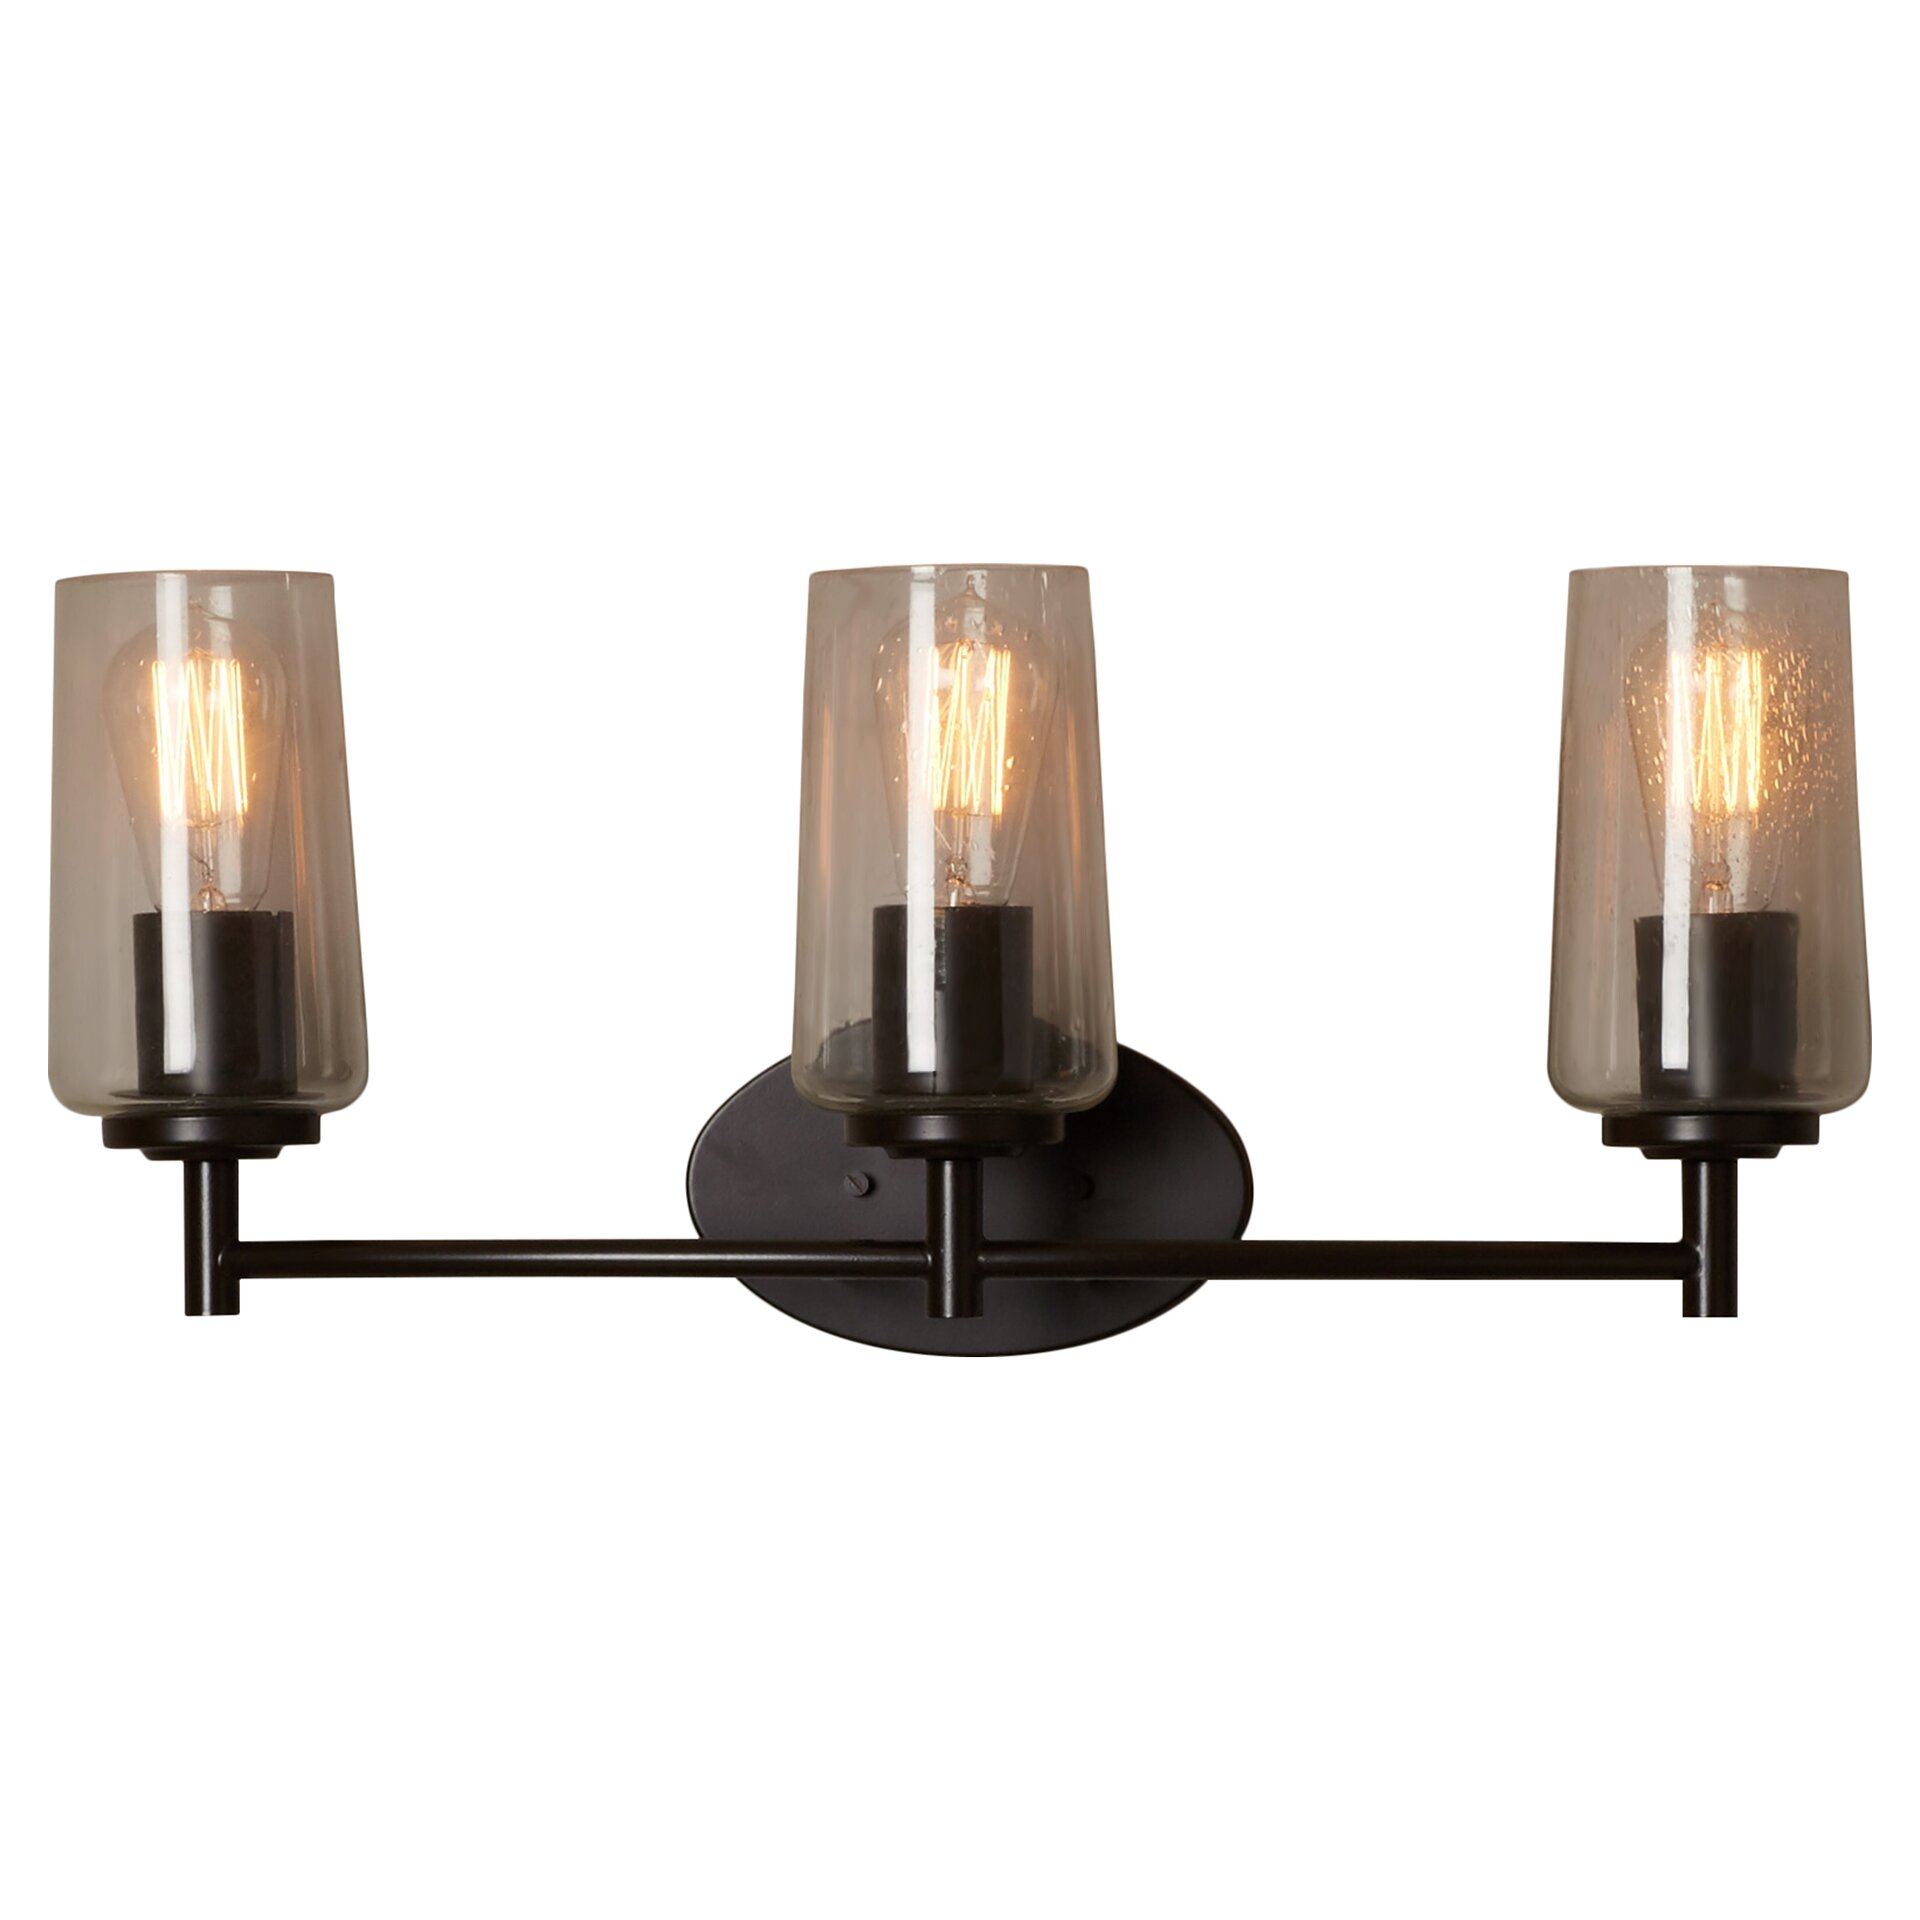 Bathroom Vanity Lighting Trent Austin Design SKU: TADN5093